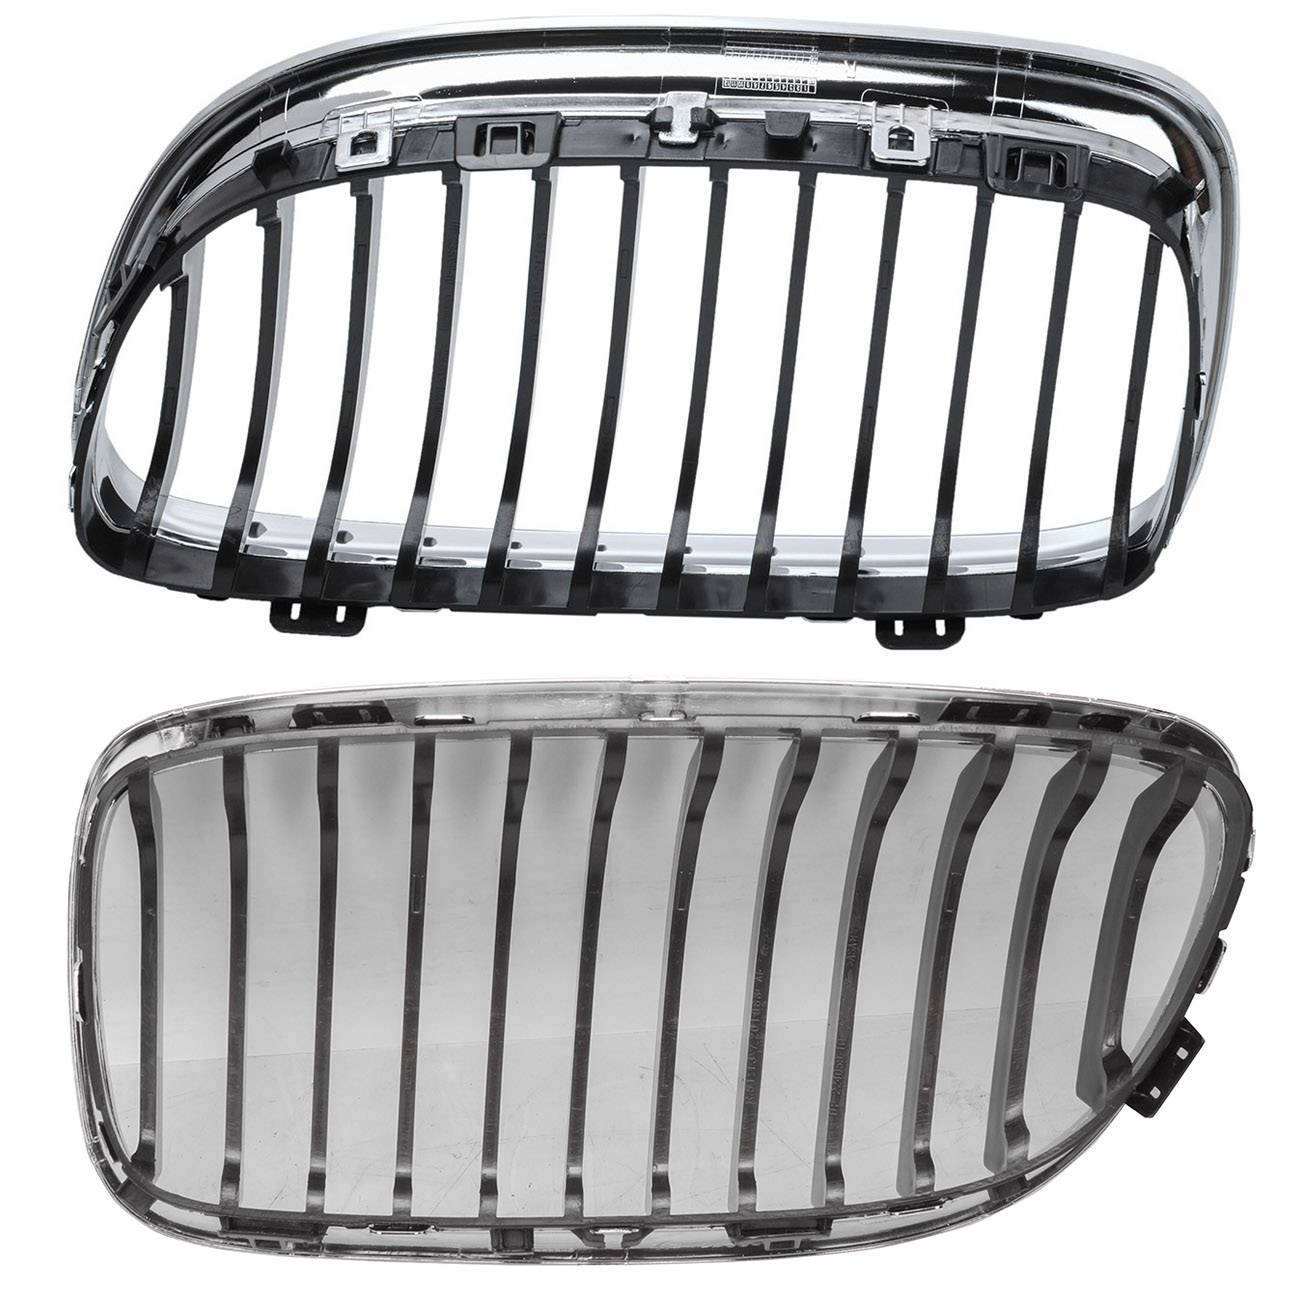 Bapmic-Set-Grill-Kidney-Grill-Left-Right-for-BMW-E90-320d-325-330-335i thumbnail 2